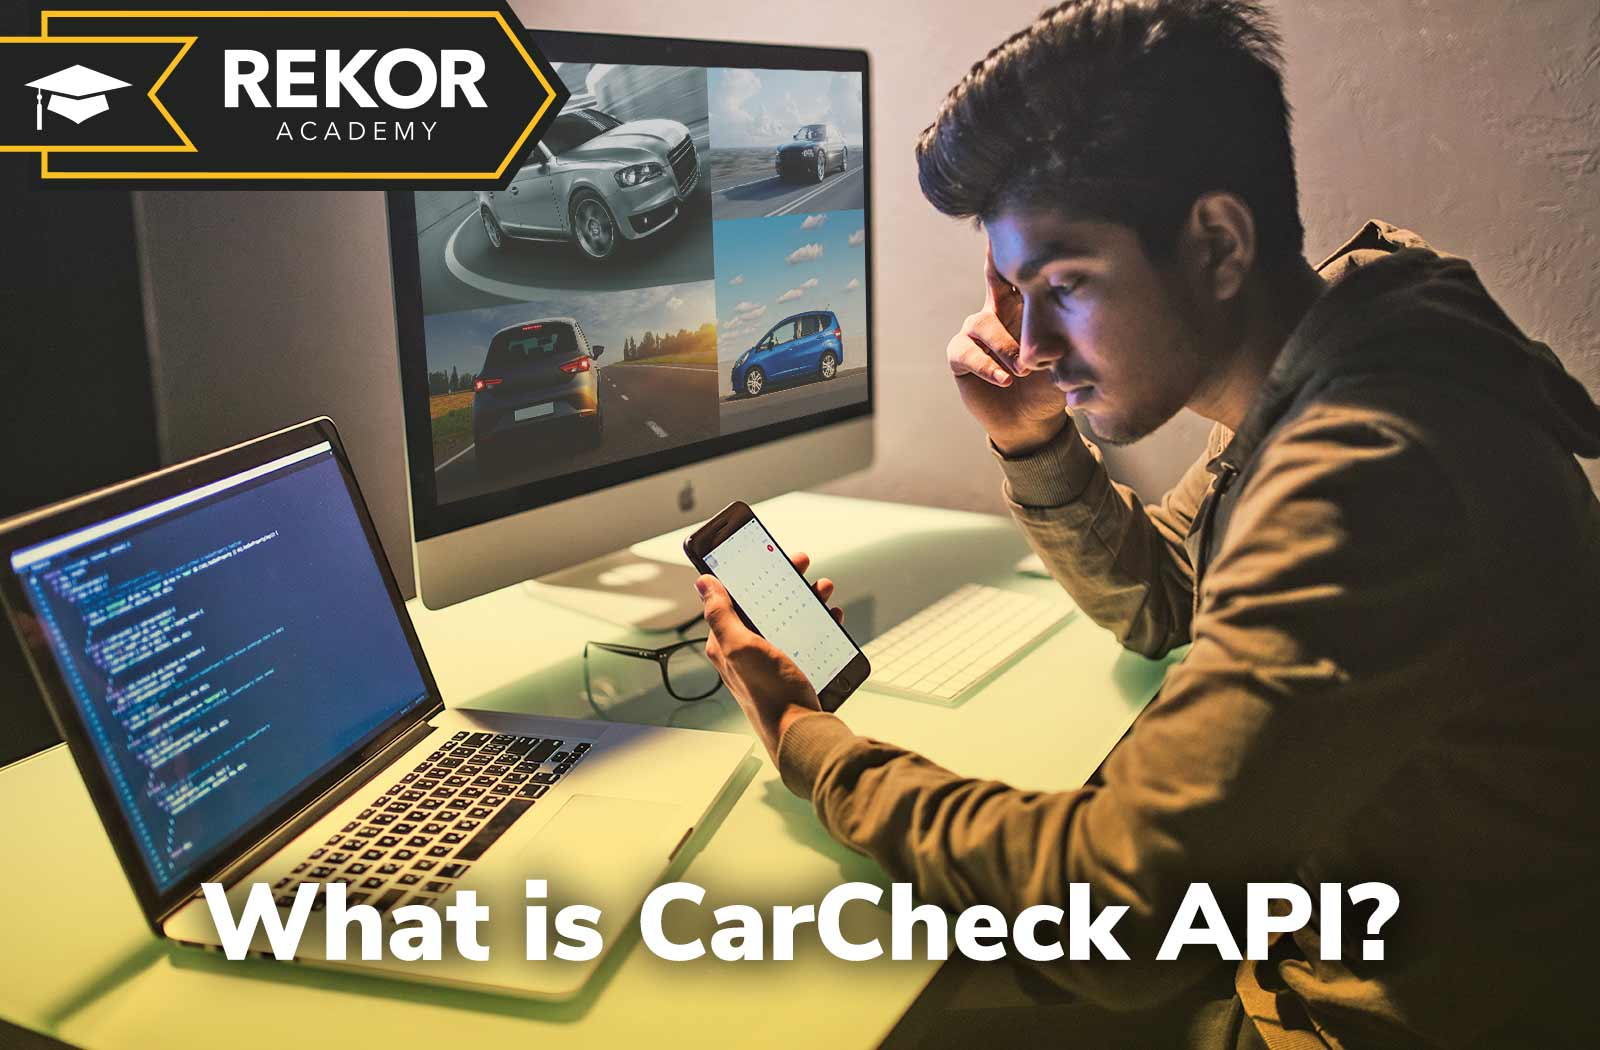 What is CarCheck API video thumbnail